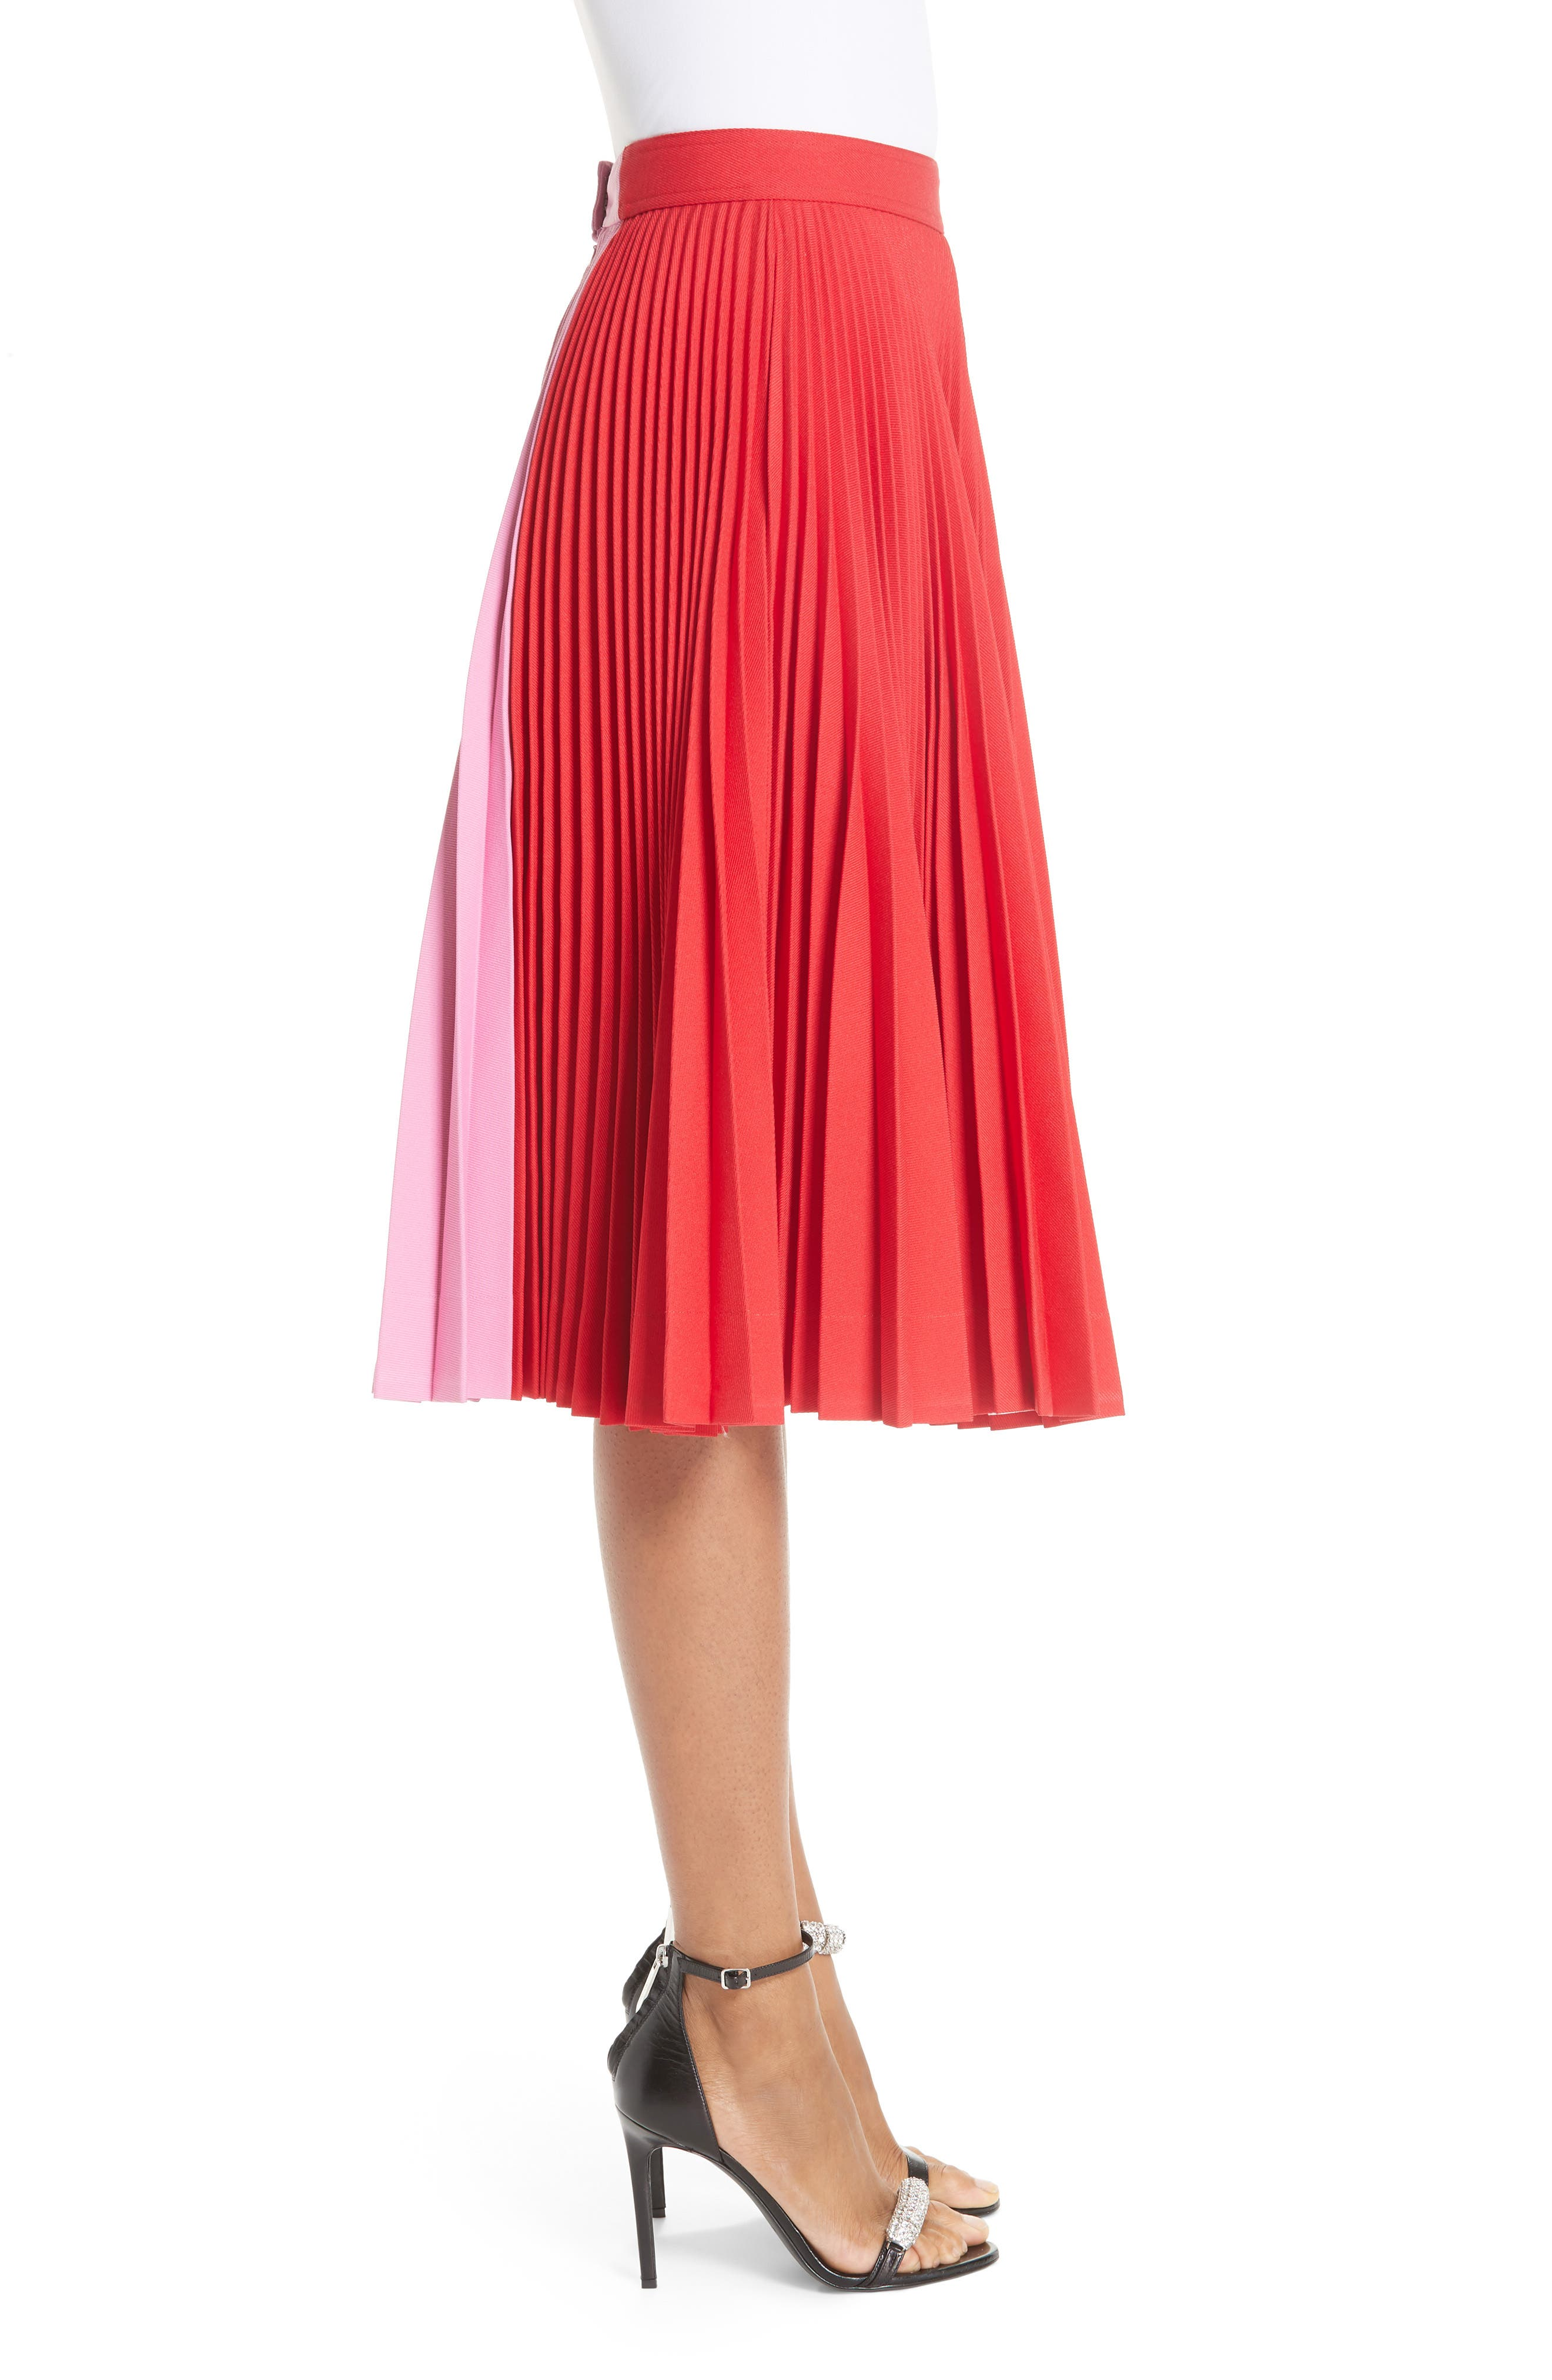 CALVIN KLEIN 205W39NYC, Bicolor Pleated Skirt, Alternate thumbnail 3, color, SCARLET ANEMONE